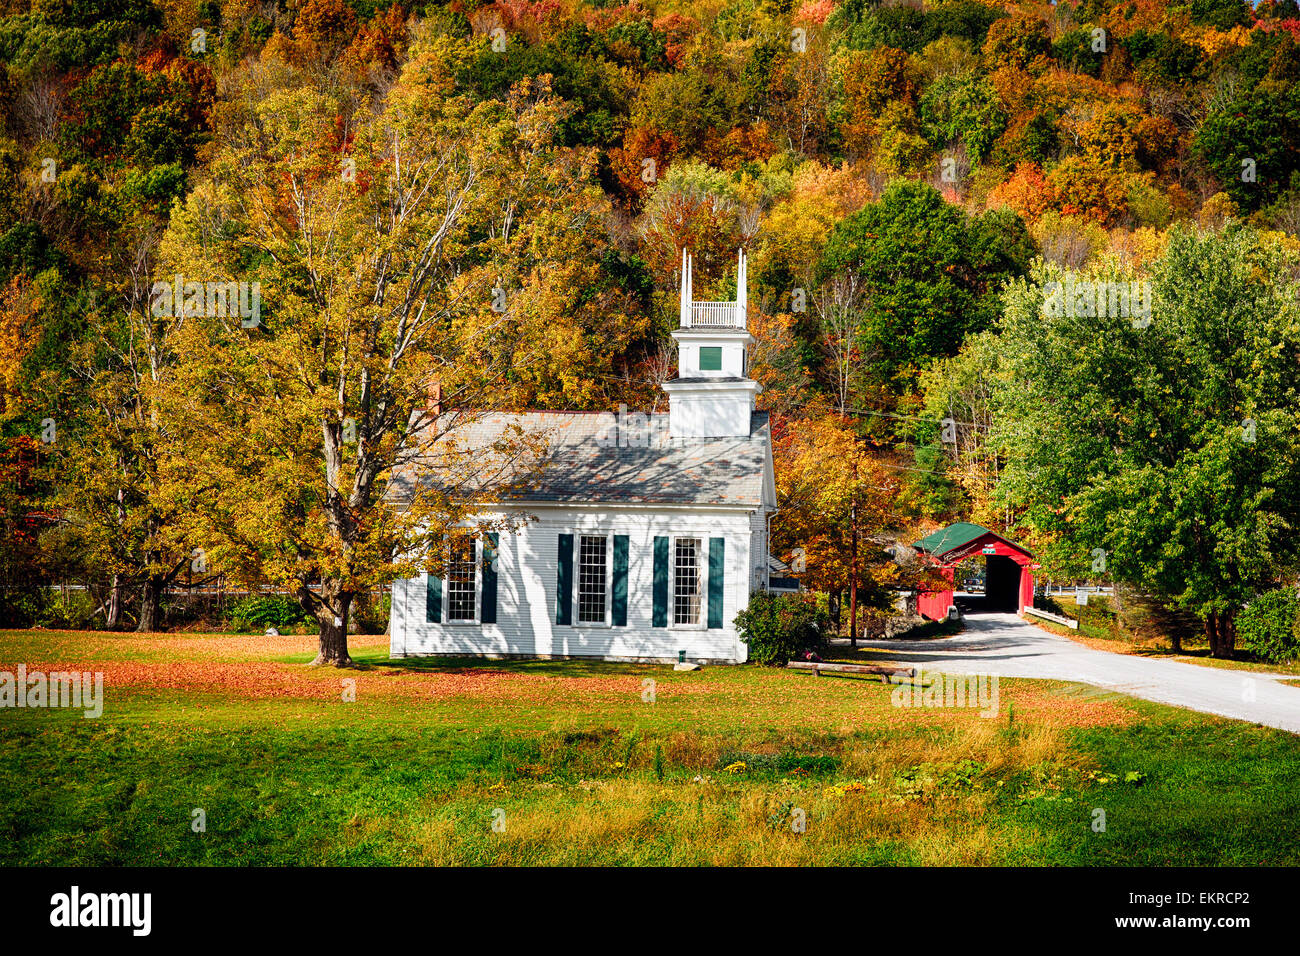 High Angle View of a Small Church and a Covered Bridge on the Village Green, Arlington, Vermont - Stock Image